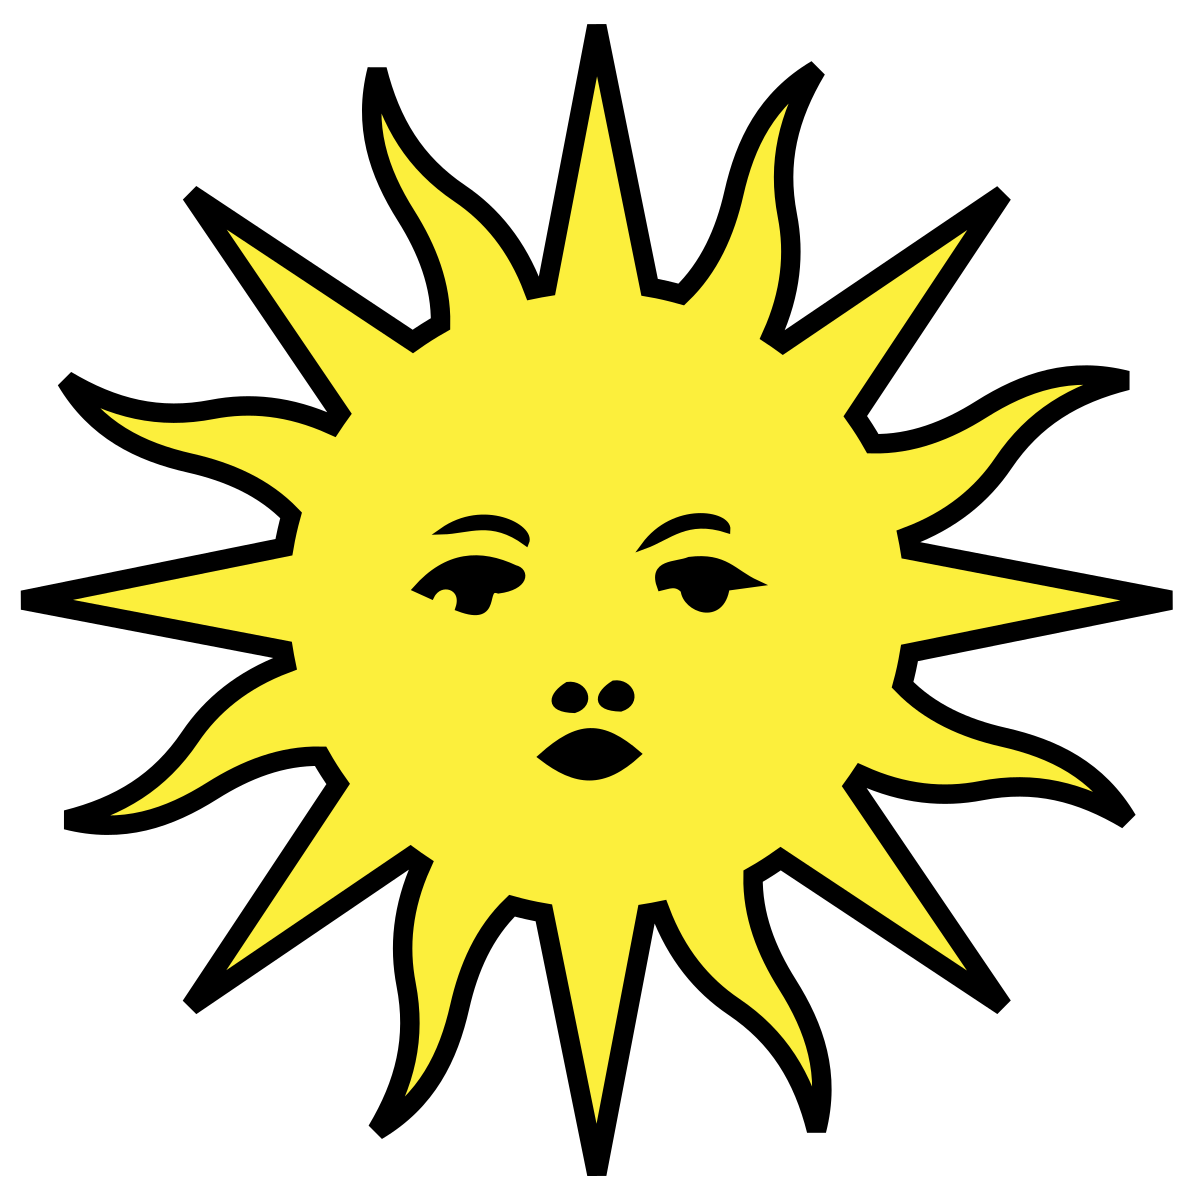 Happy Sun Drawing | Free download best Happy Sun Drawing on